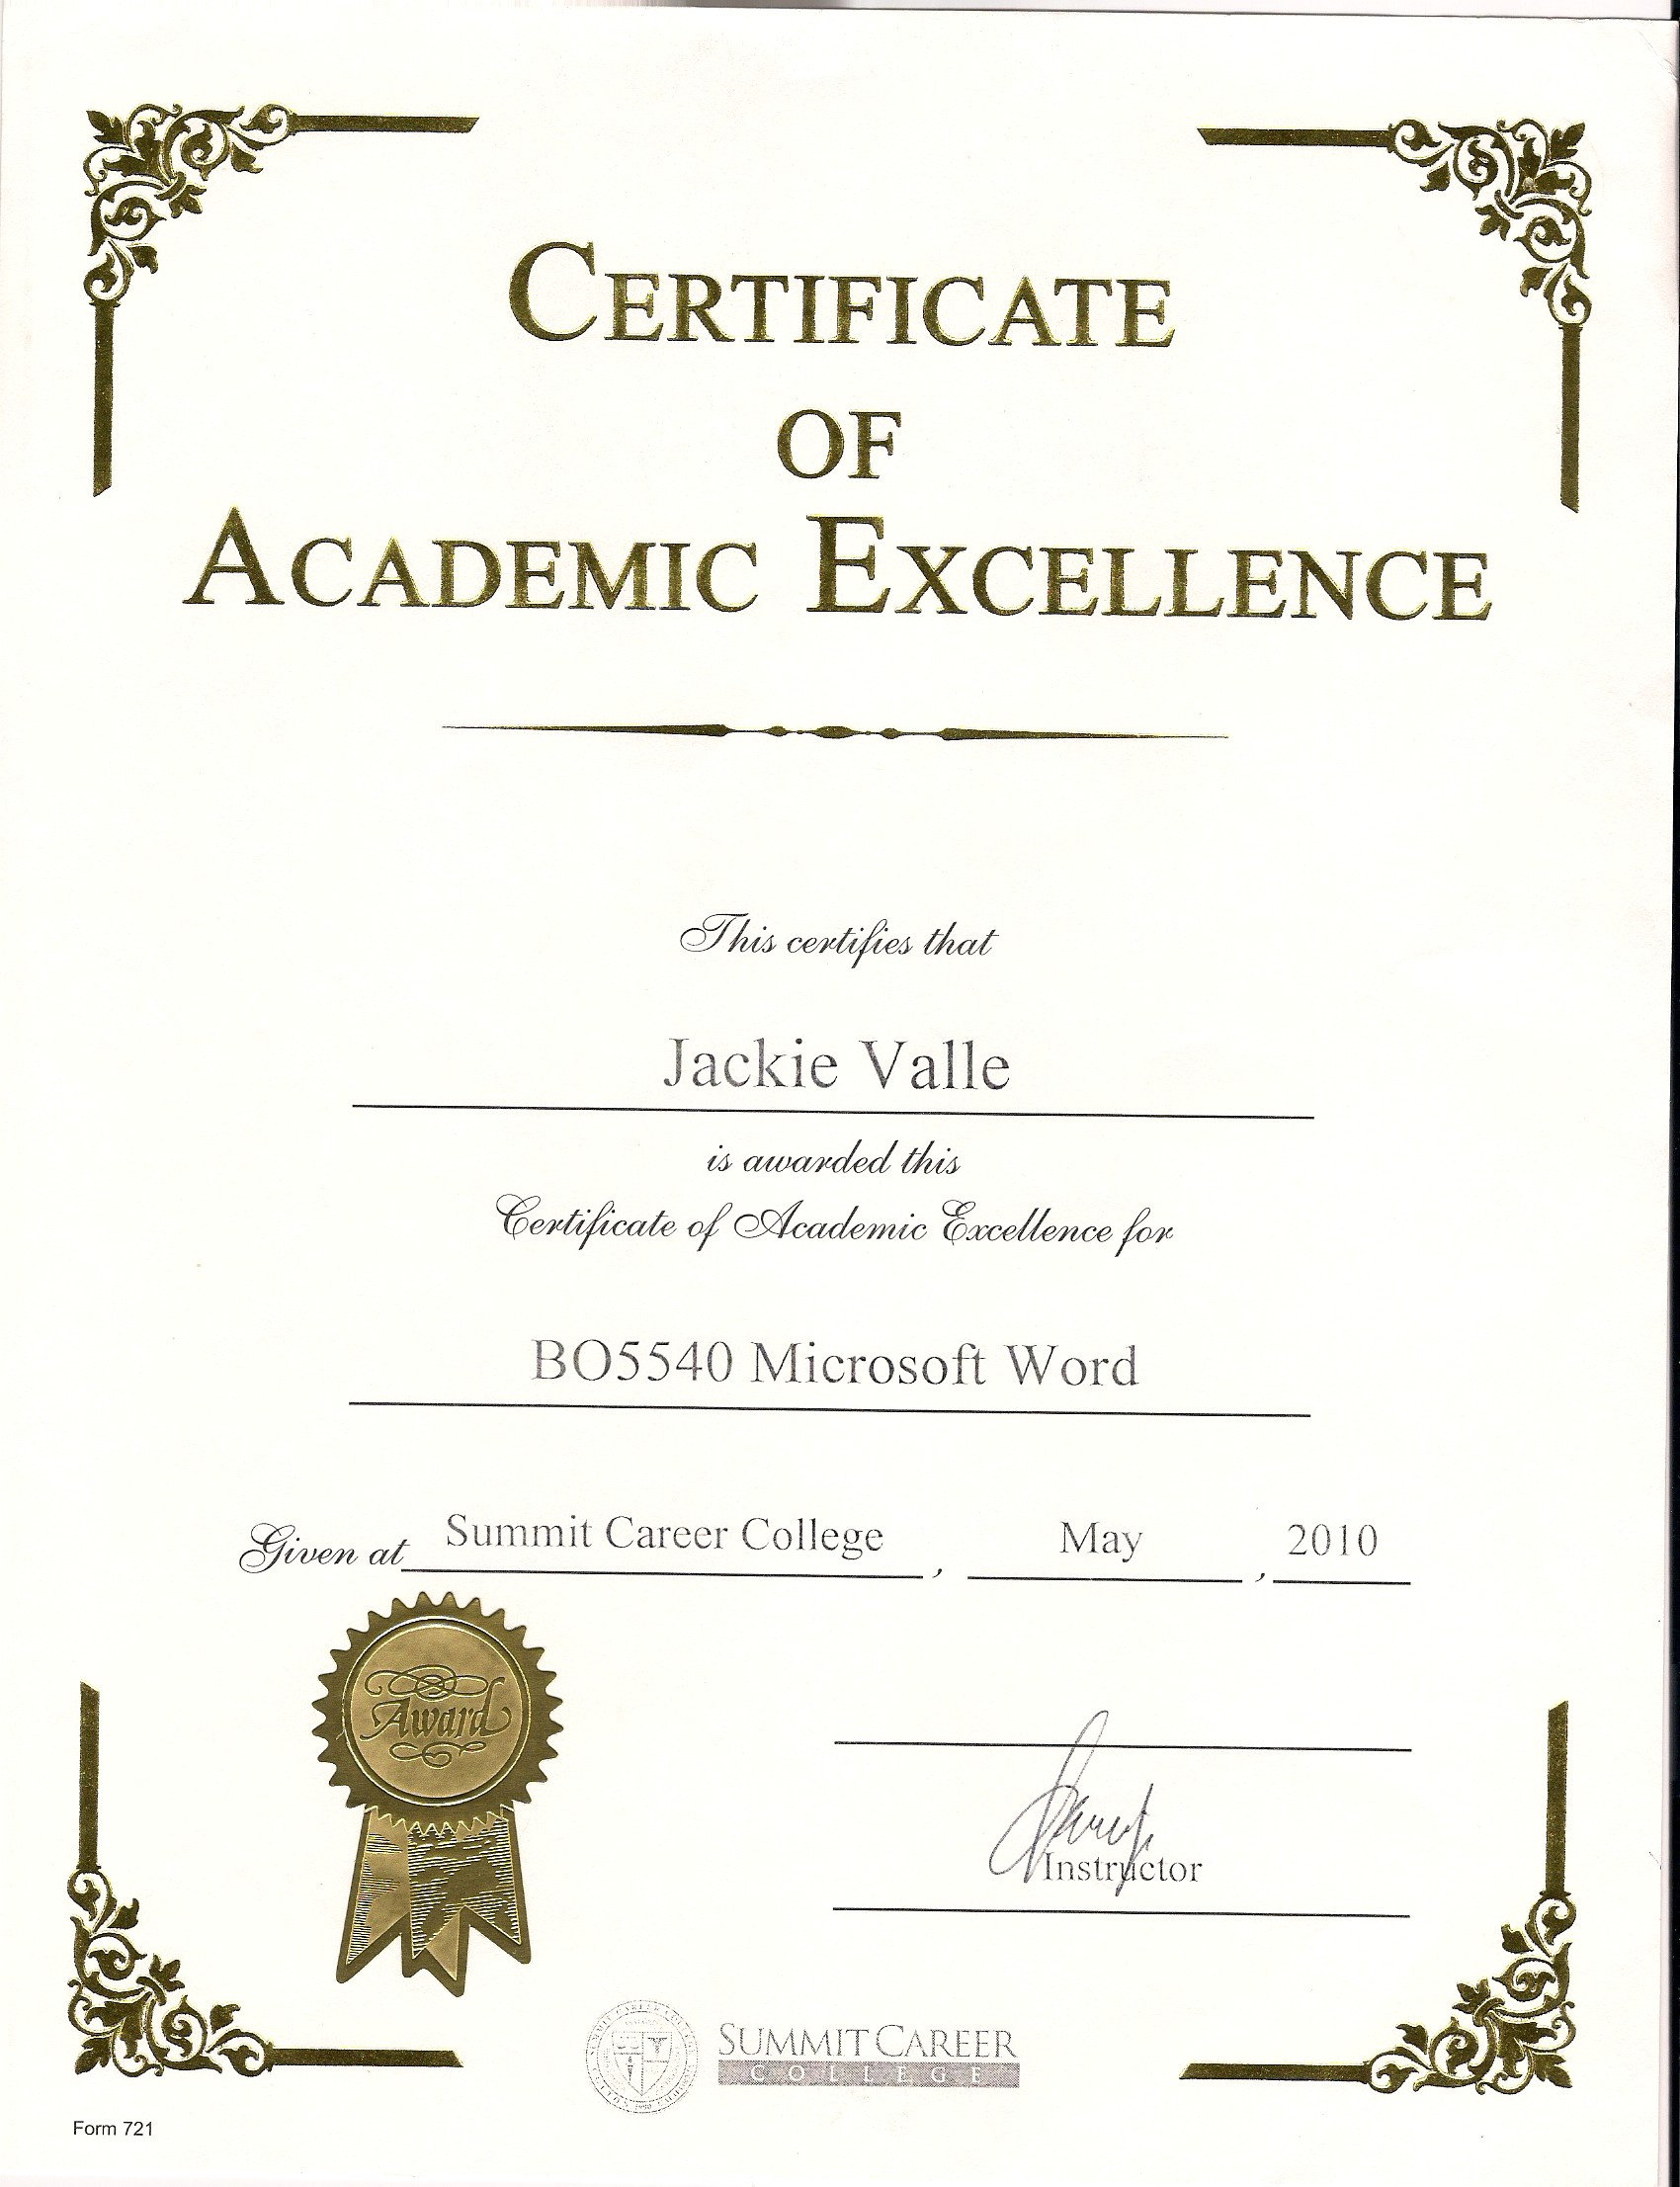 certificate of excellence template editable - awards and certificates jacqueline valle professional